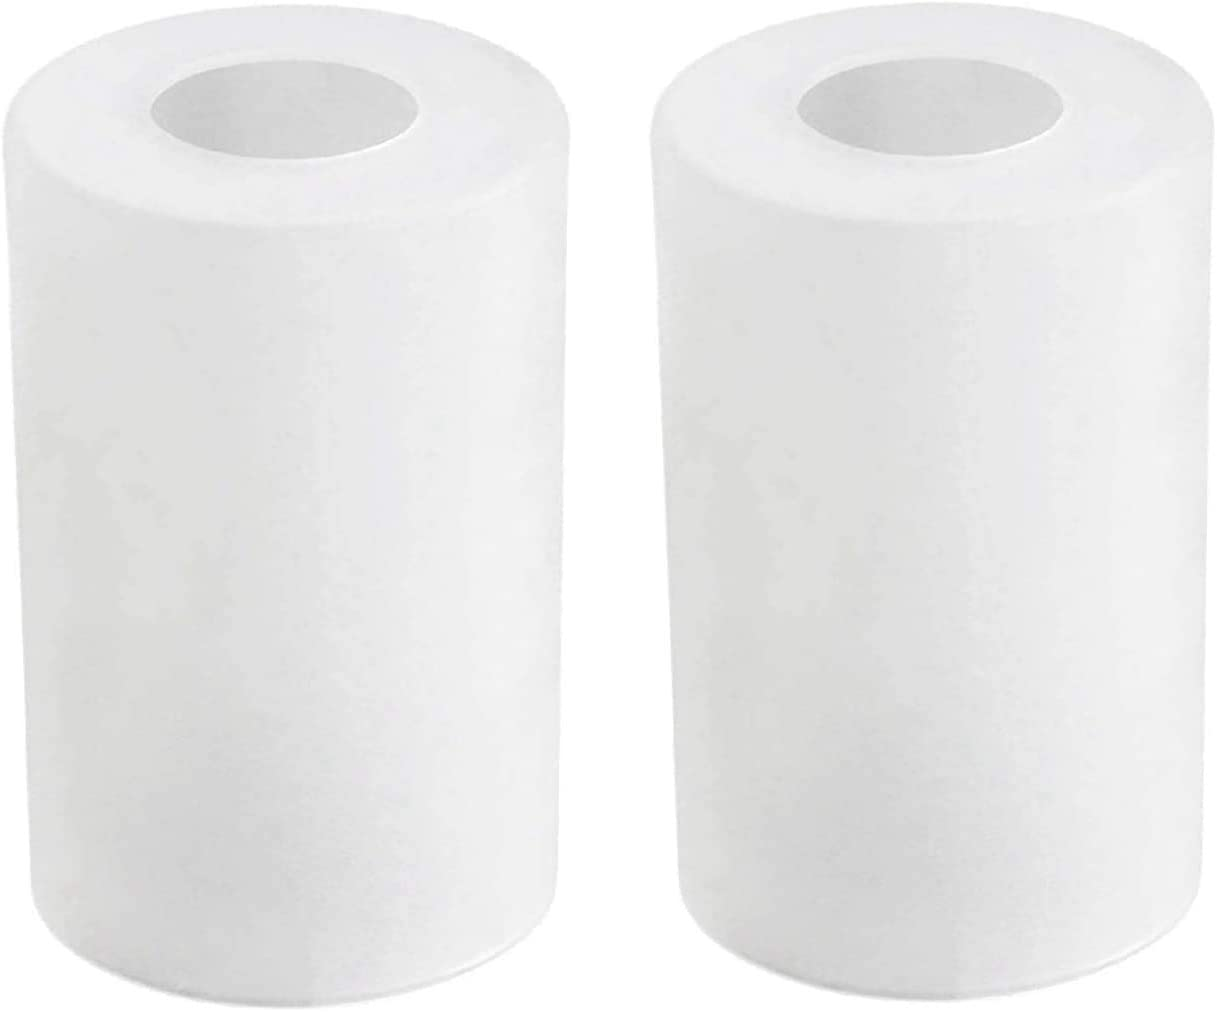 """Frosted Light Shade Glass Lamp Shade Pendant Light Shade Replacement Light Fixture Cylinder Shade Diameter 3.5"""" Height 5.5"""" Fitter 1.65"""" (2 Packs)"""